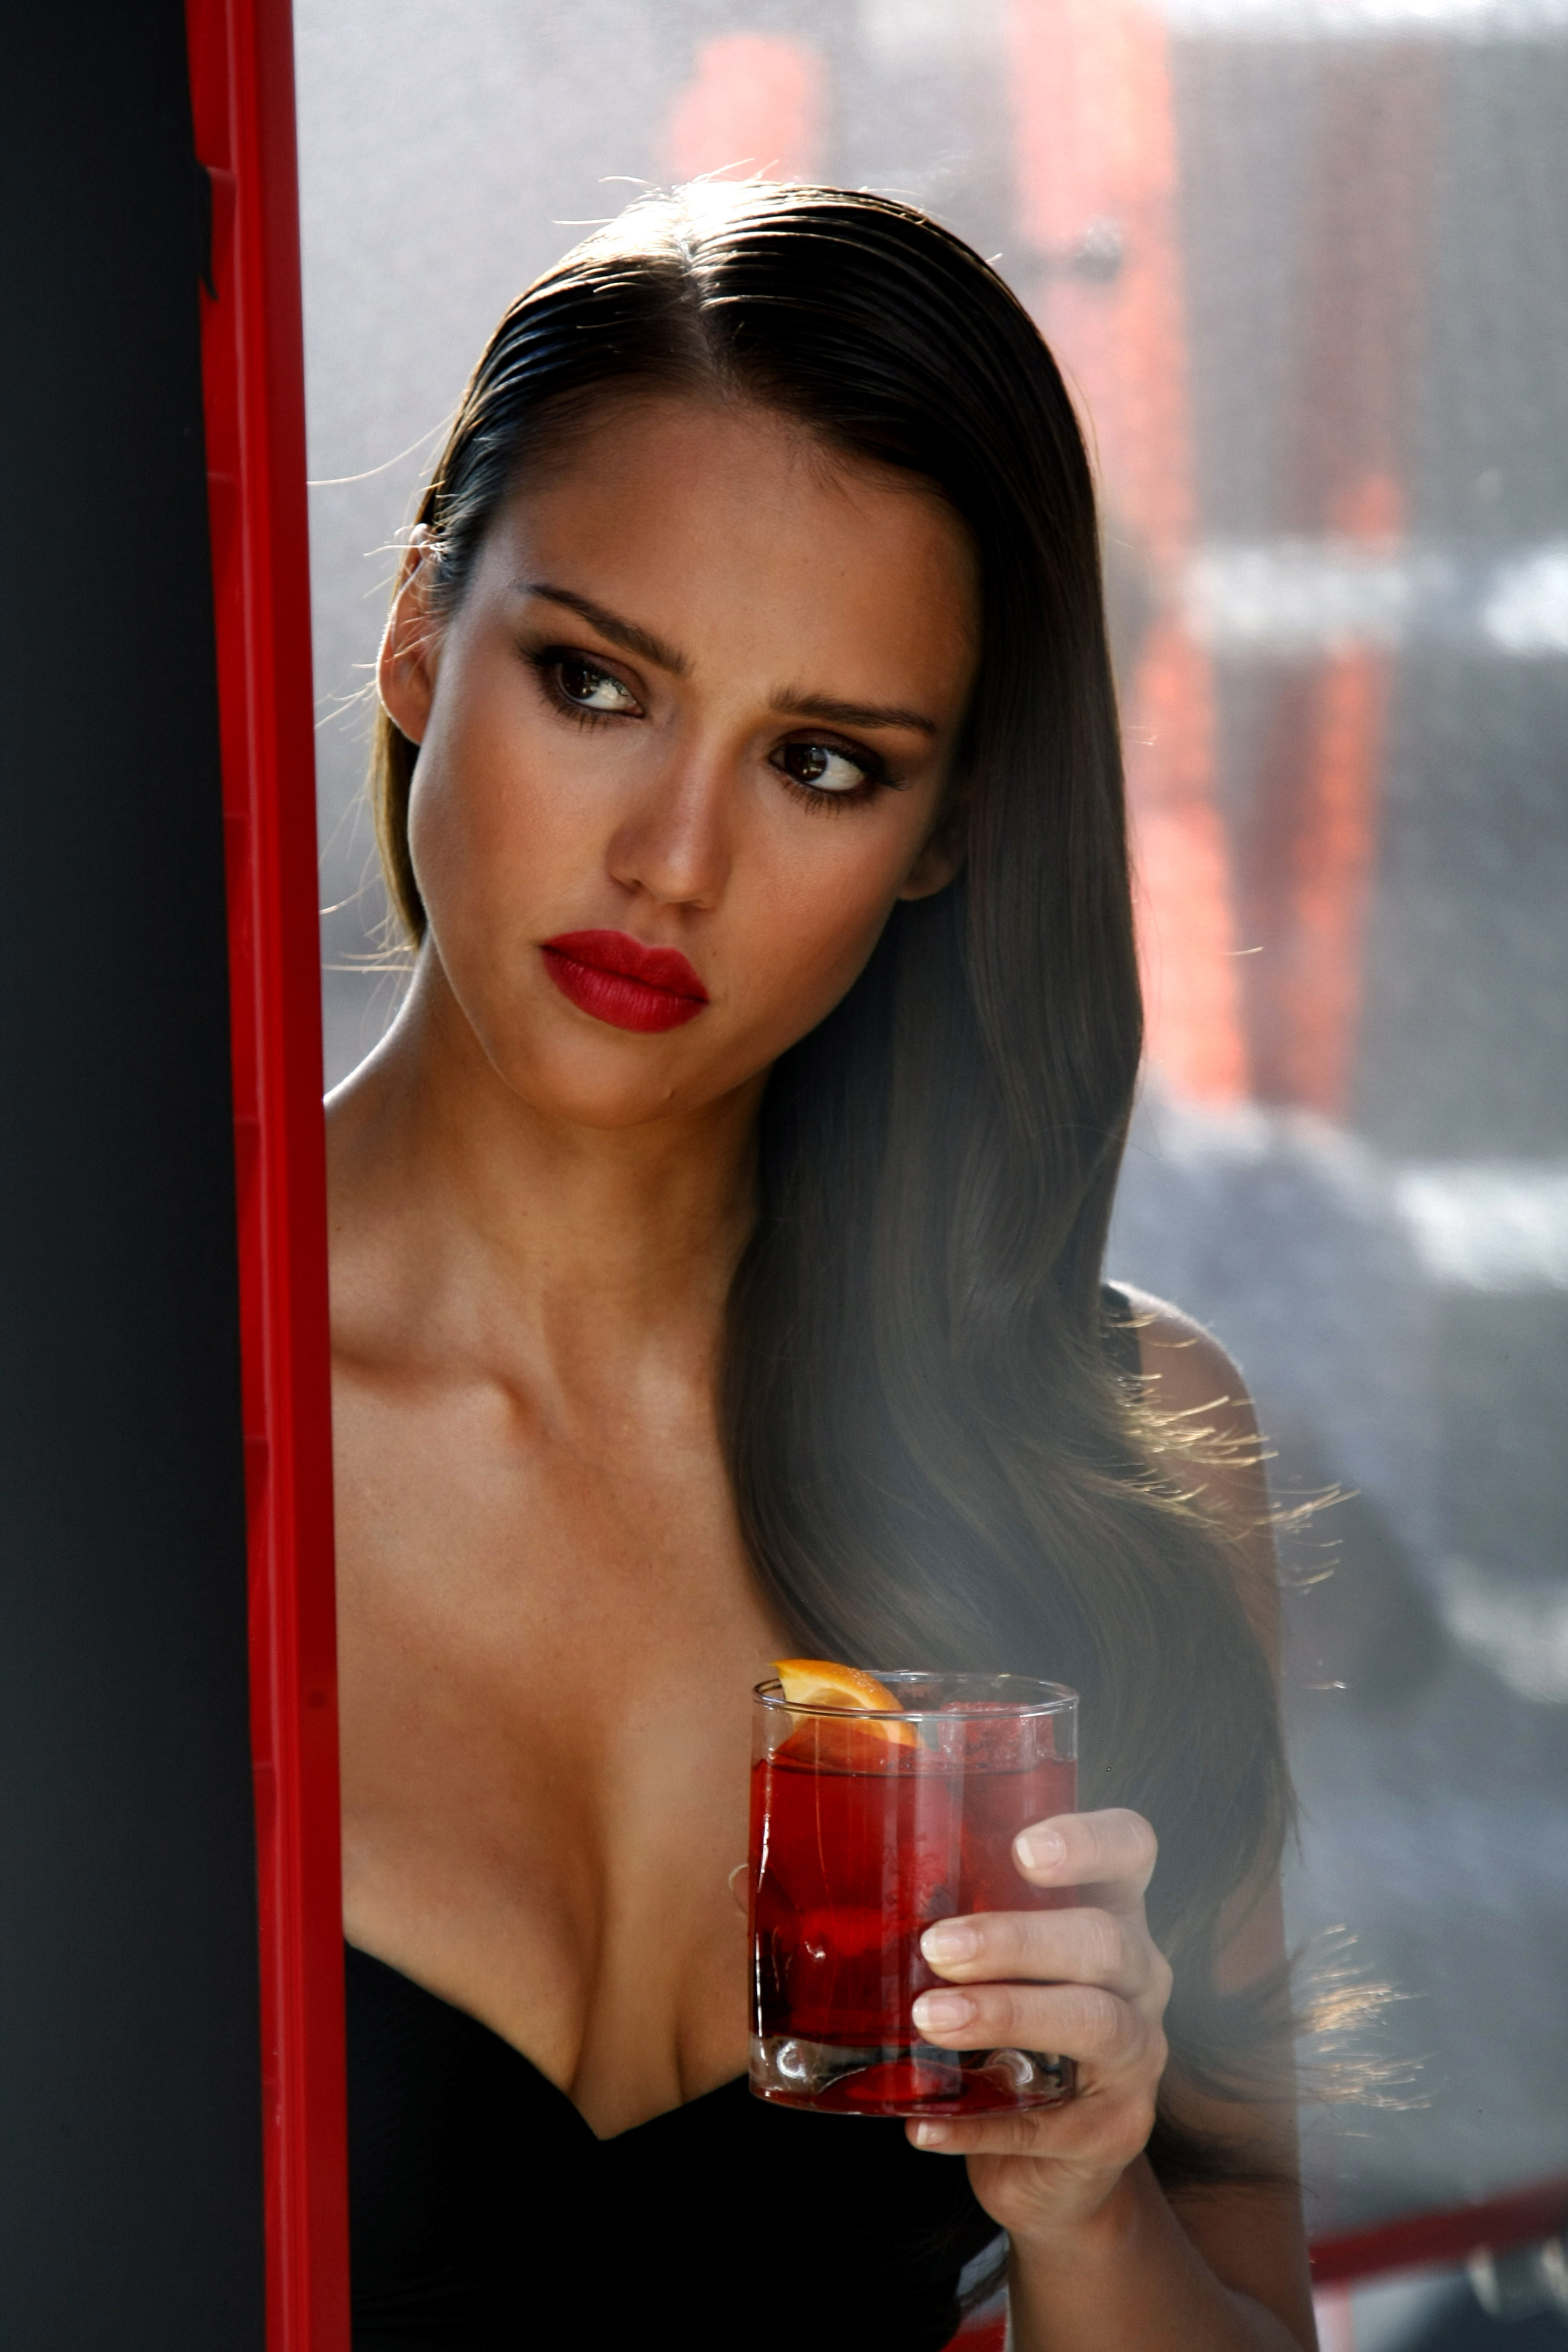 jessica alba girl attractive adult sexy hair portrait lady face